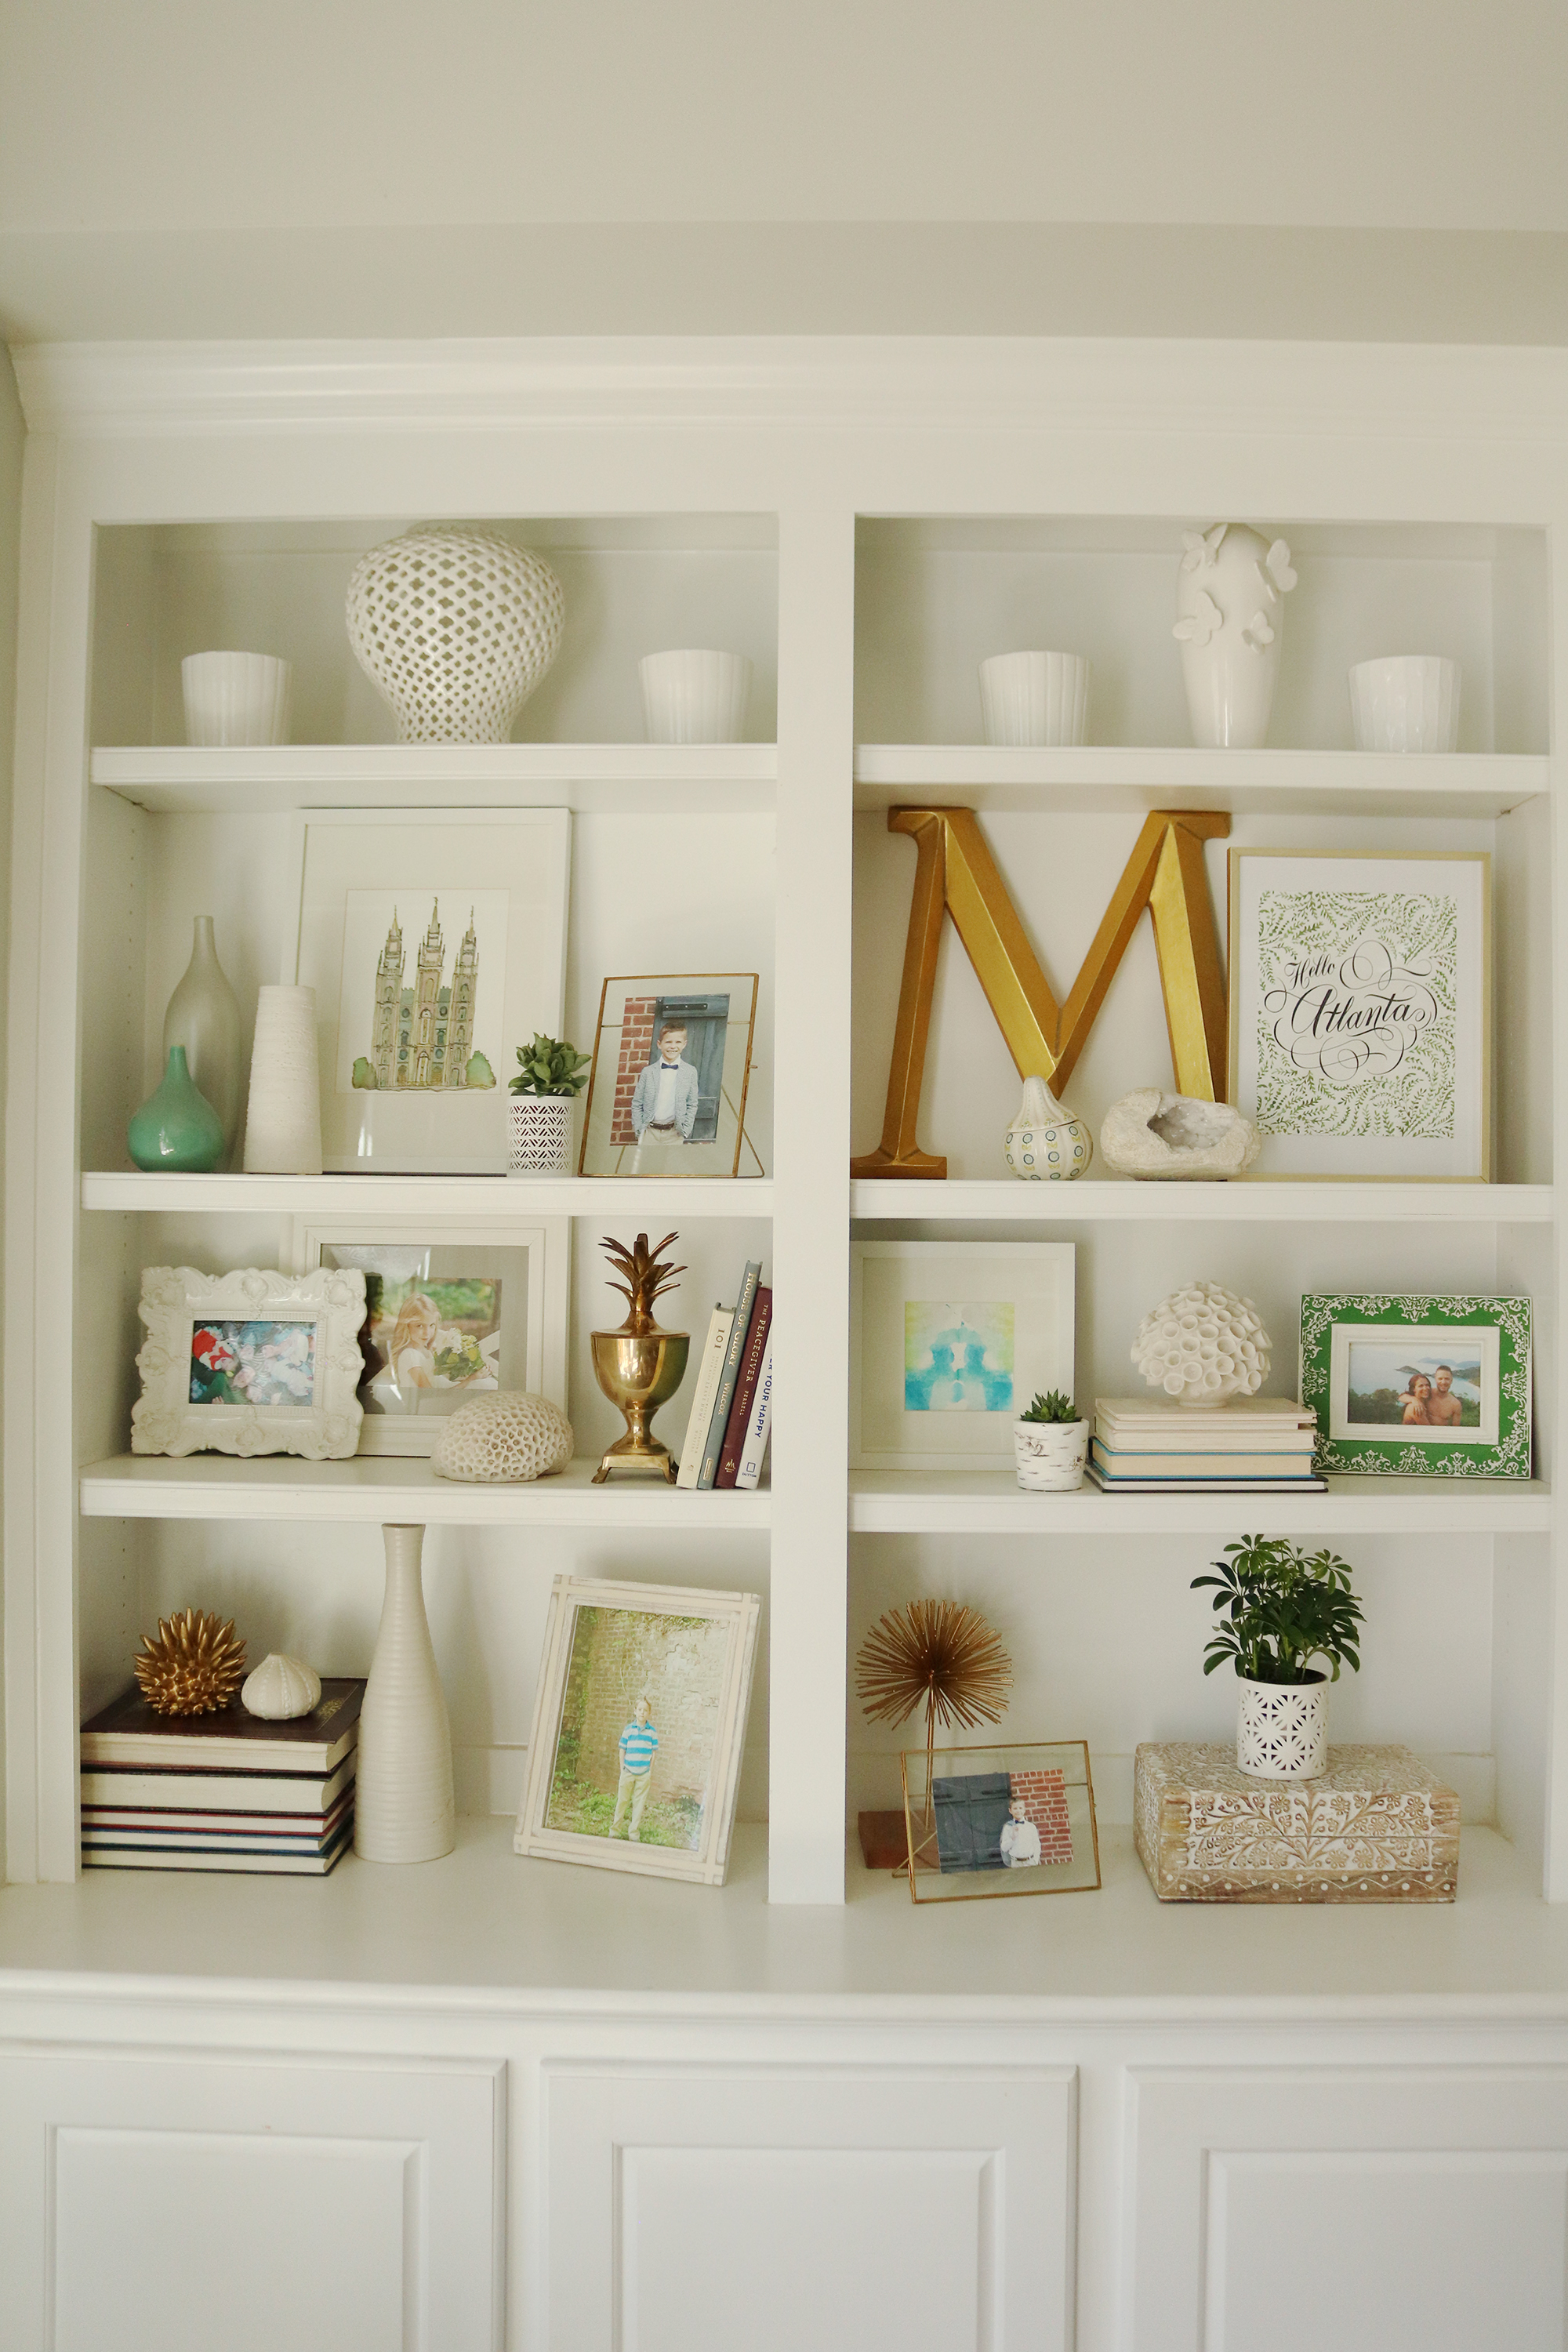 4 Tips for Refreshening Your Bookshelf || Darling Darleen #bookshelfstyling #bookshelfshelfie #darlingdarleen